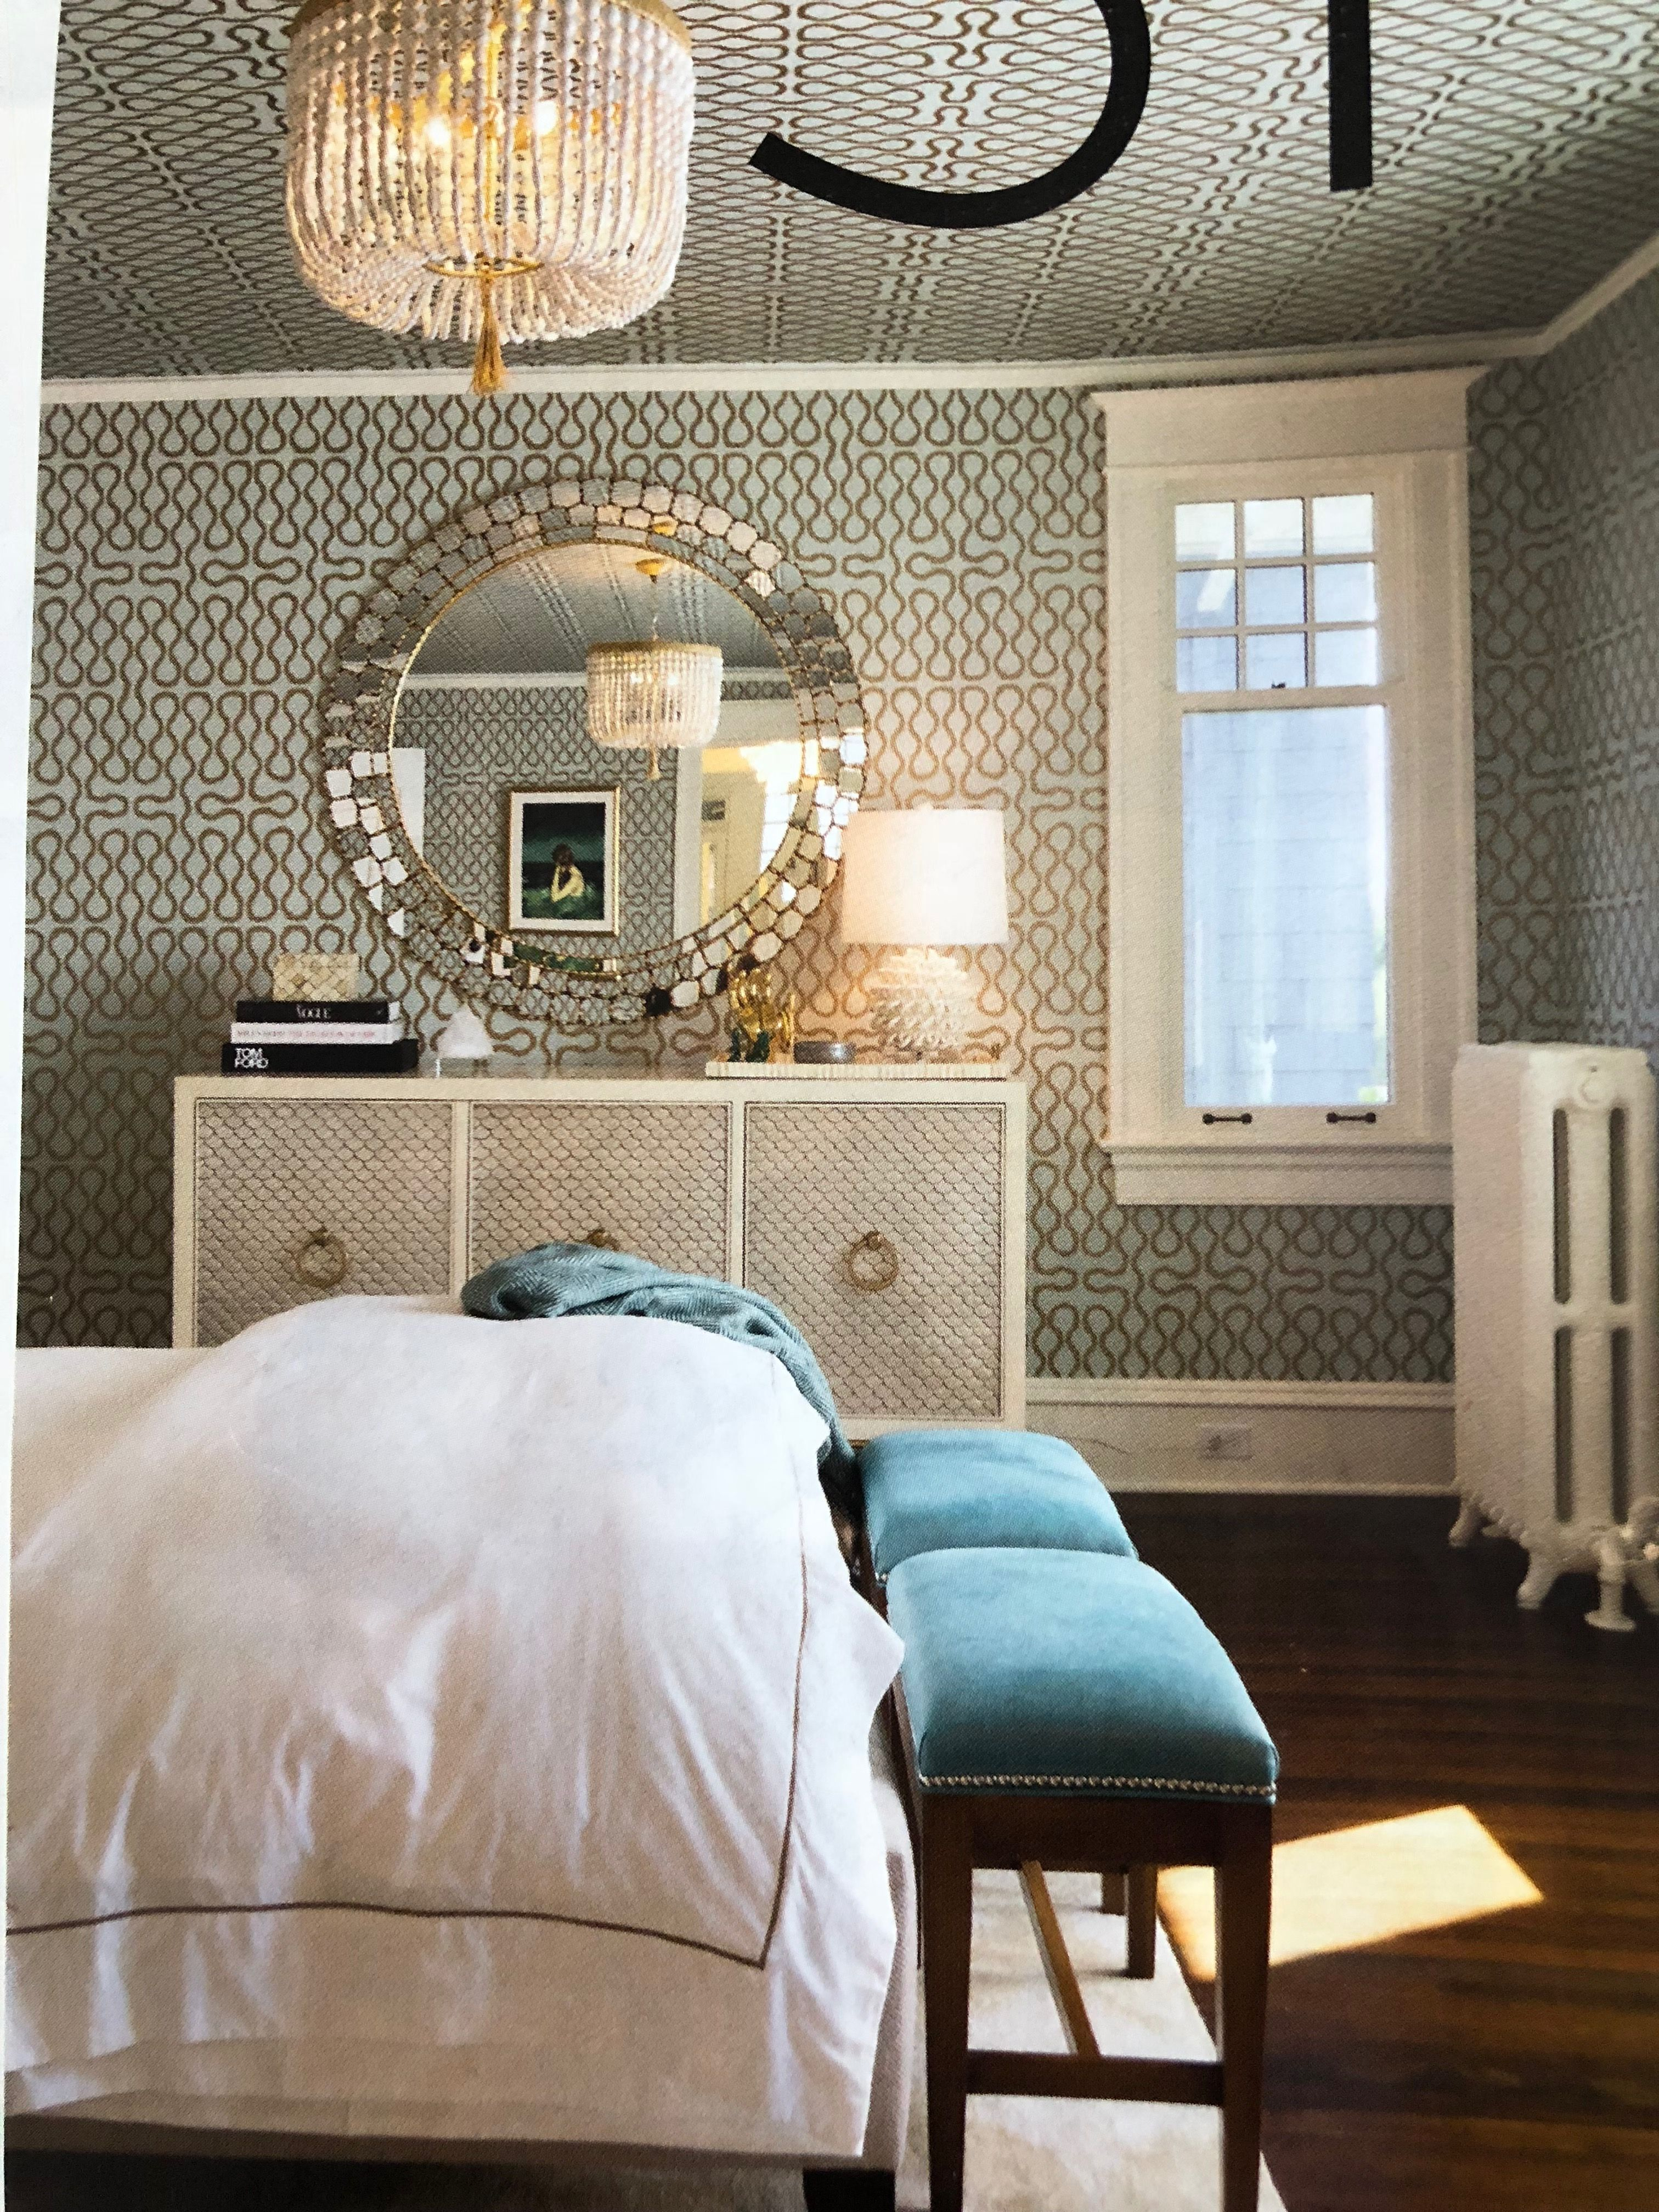 Pin By Christiane Fife On Home Decor Residential Design Home